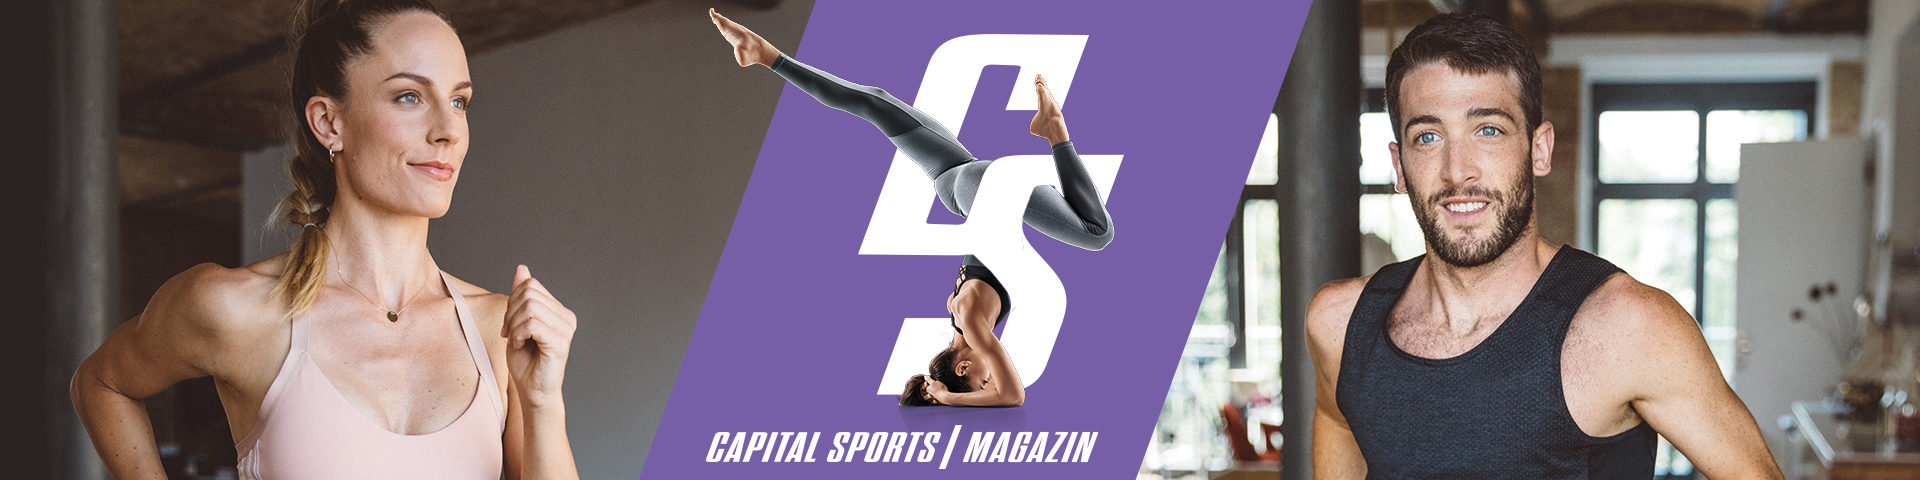 Capital Sports Magazin